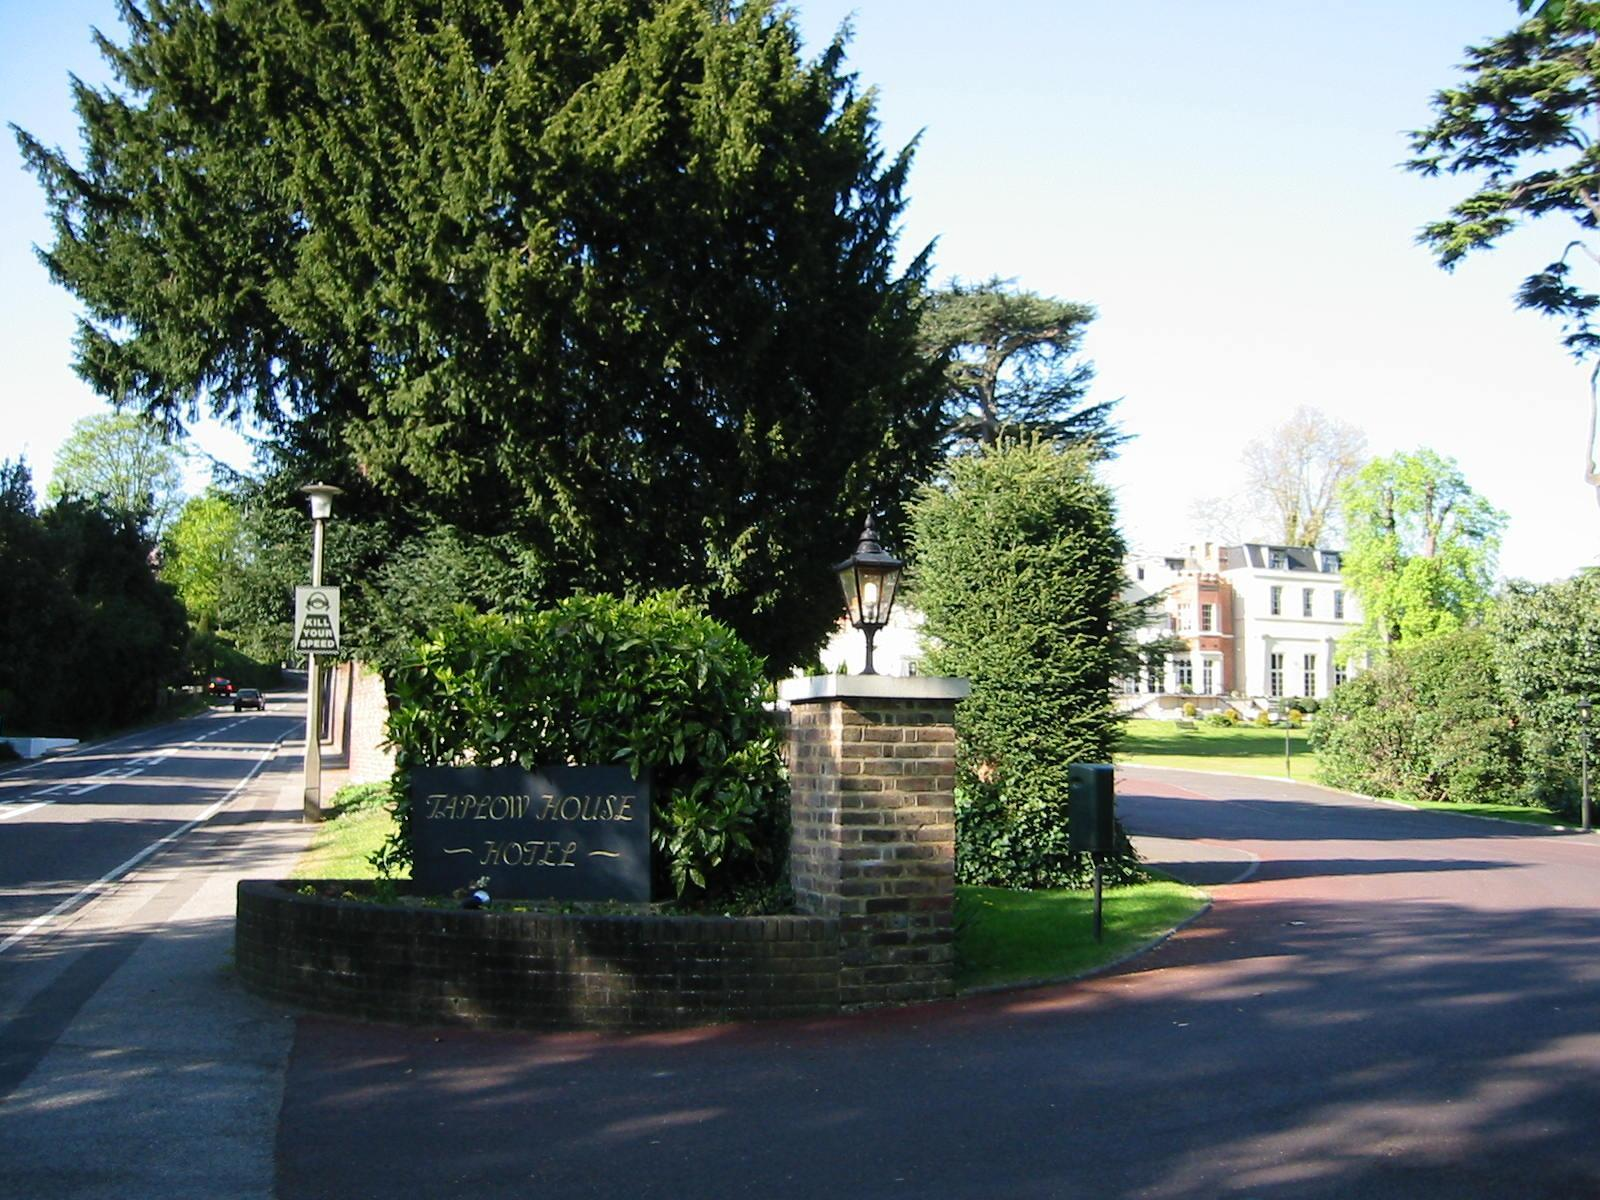 The Taplow House Hotel